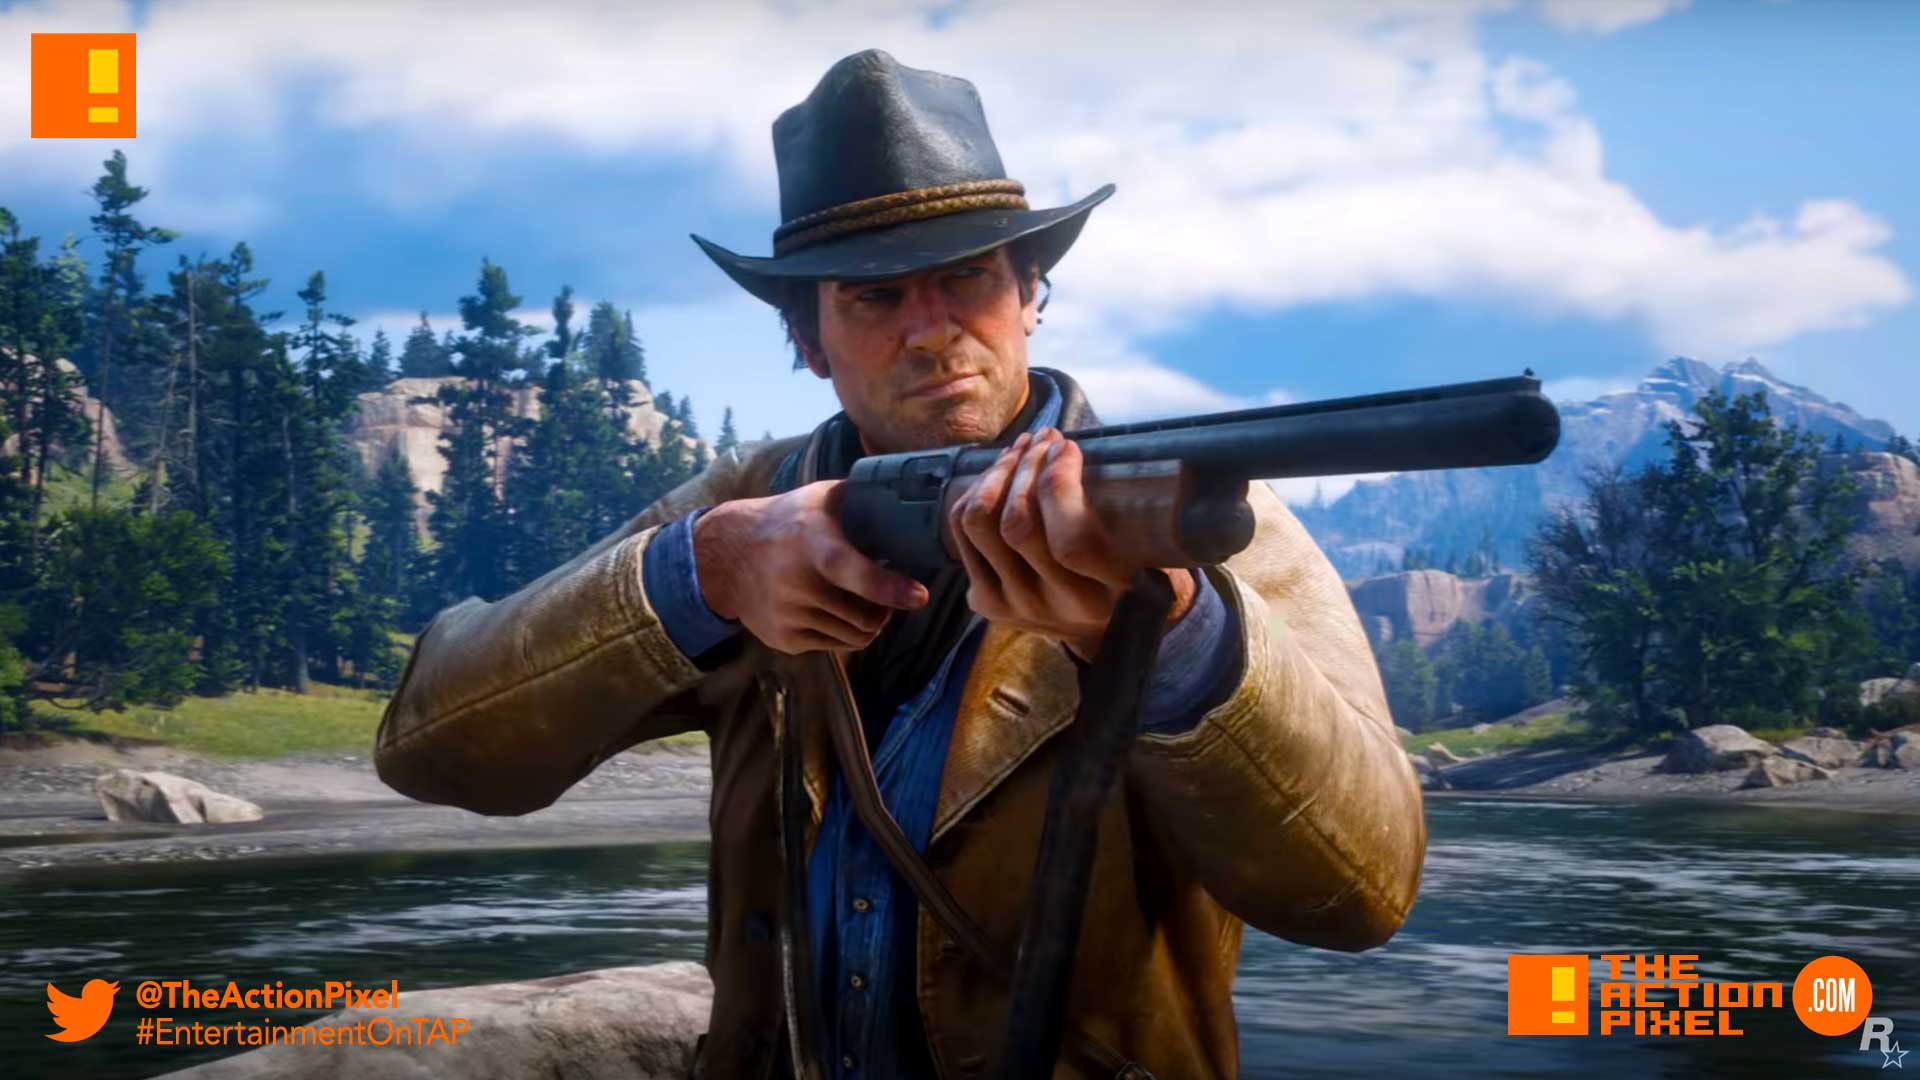 rockstar games, red dead redemption, entertainment on tap, the action pixel, rockstar games, delayed, screenshots, trailer, trailer 2, delayed, screenshot, screenshots, red dead redemption 2 delayed, , gameplay video,